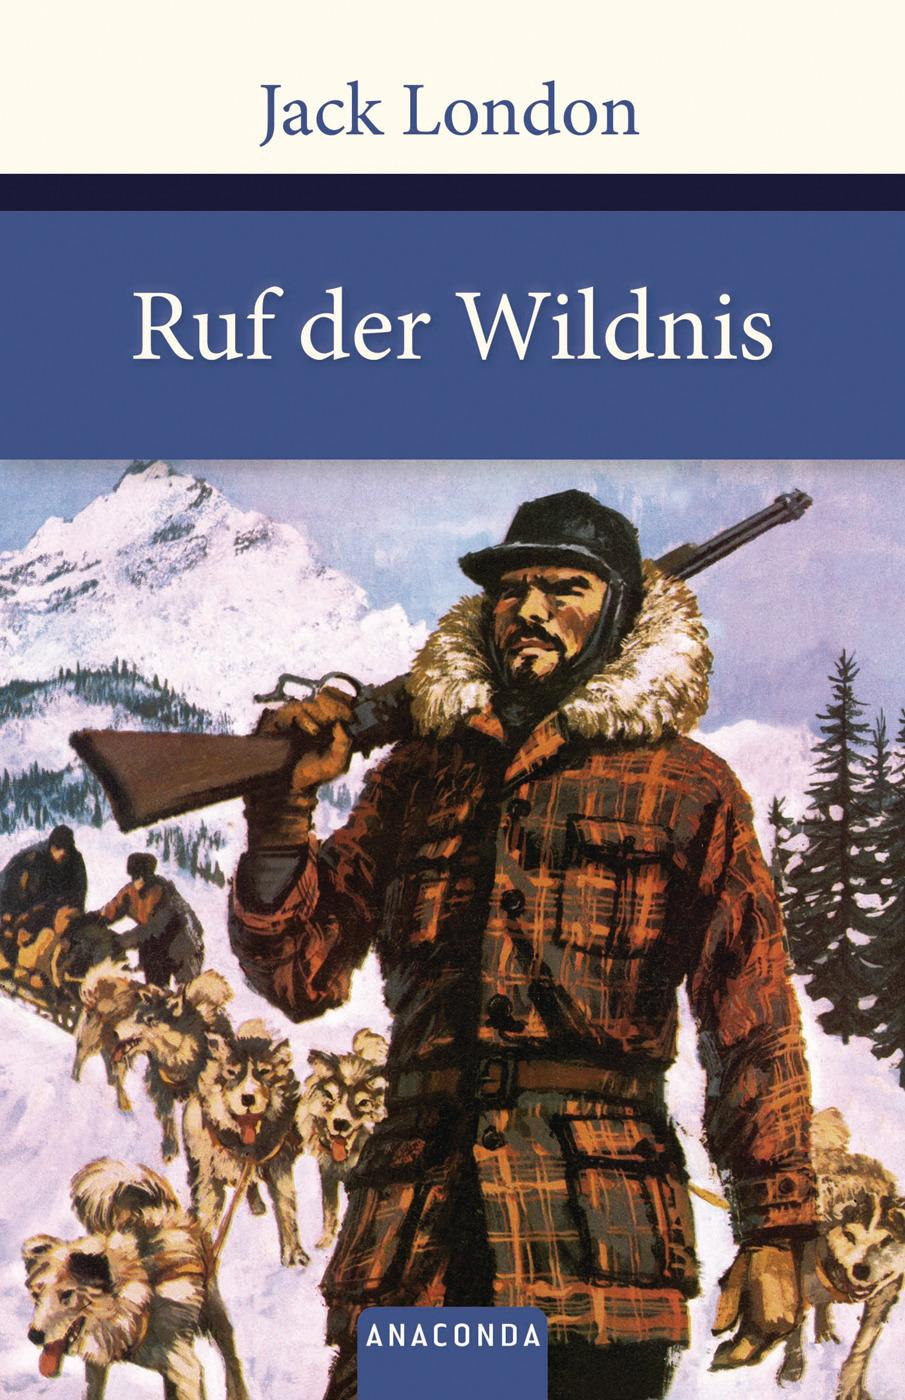 NEU-Ruf-der-Wildnis-Jack-London-477117